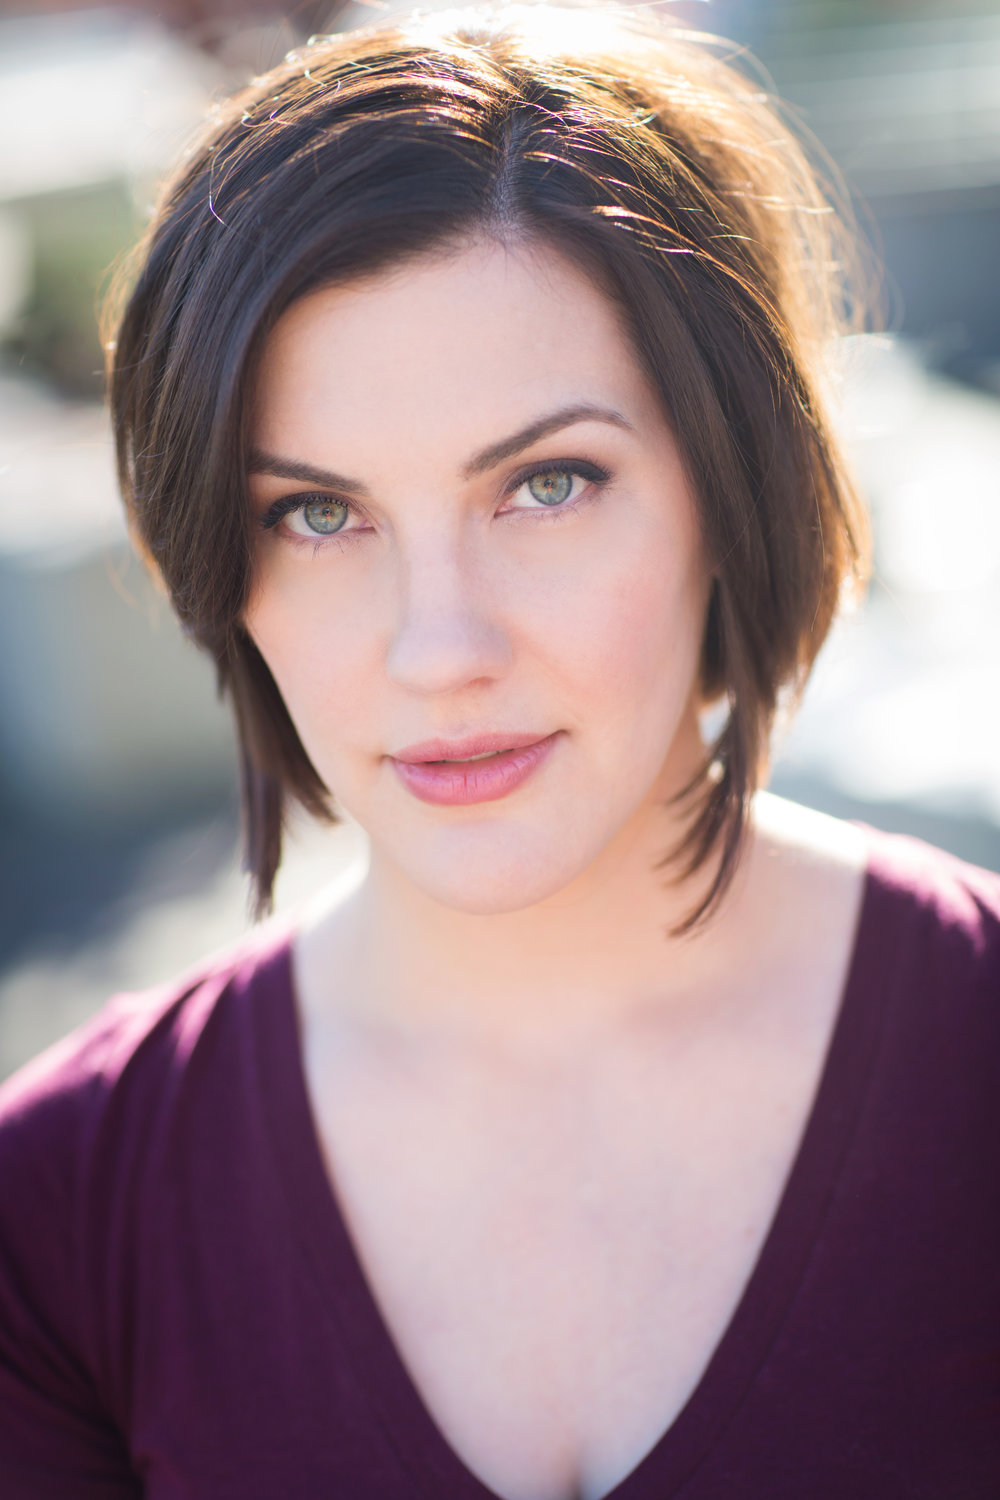 Zandi Carlson - Headshot - Photo by Danielle Barnum